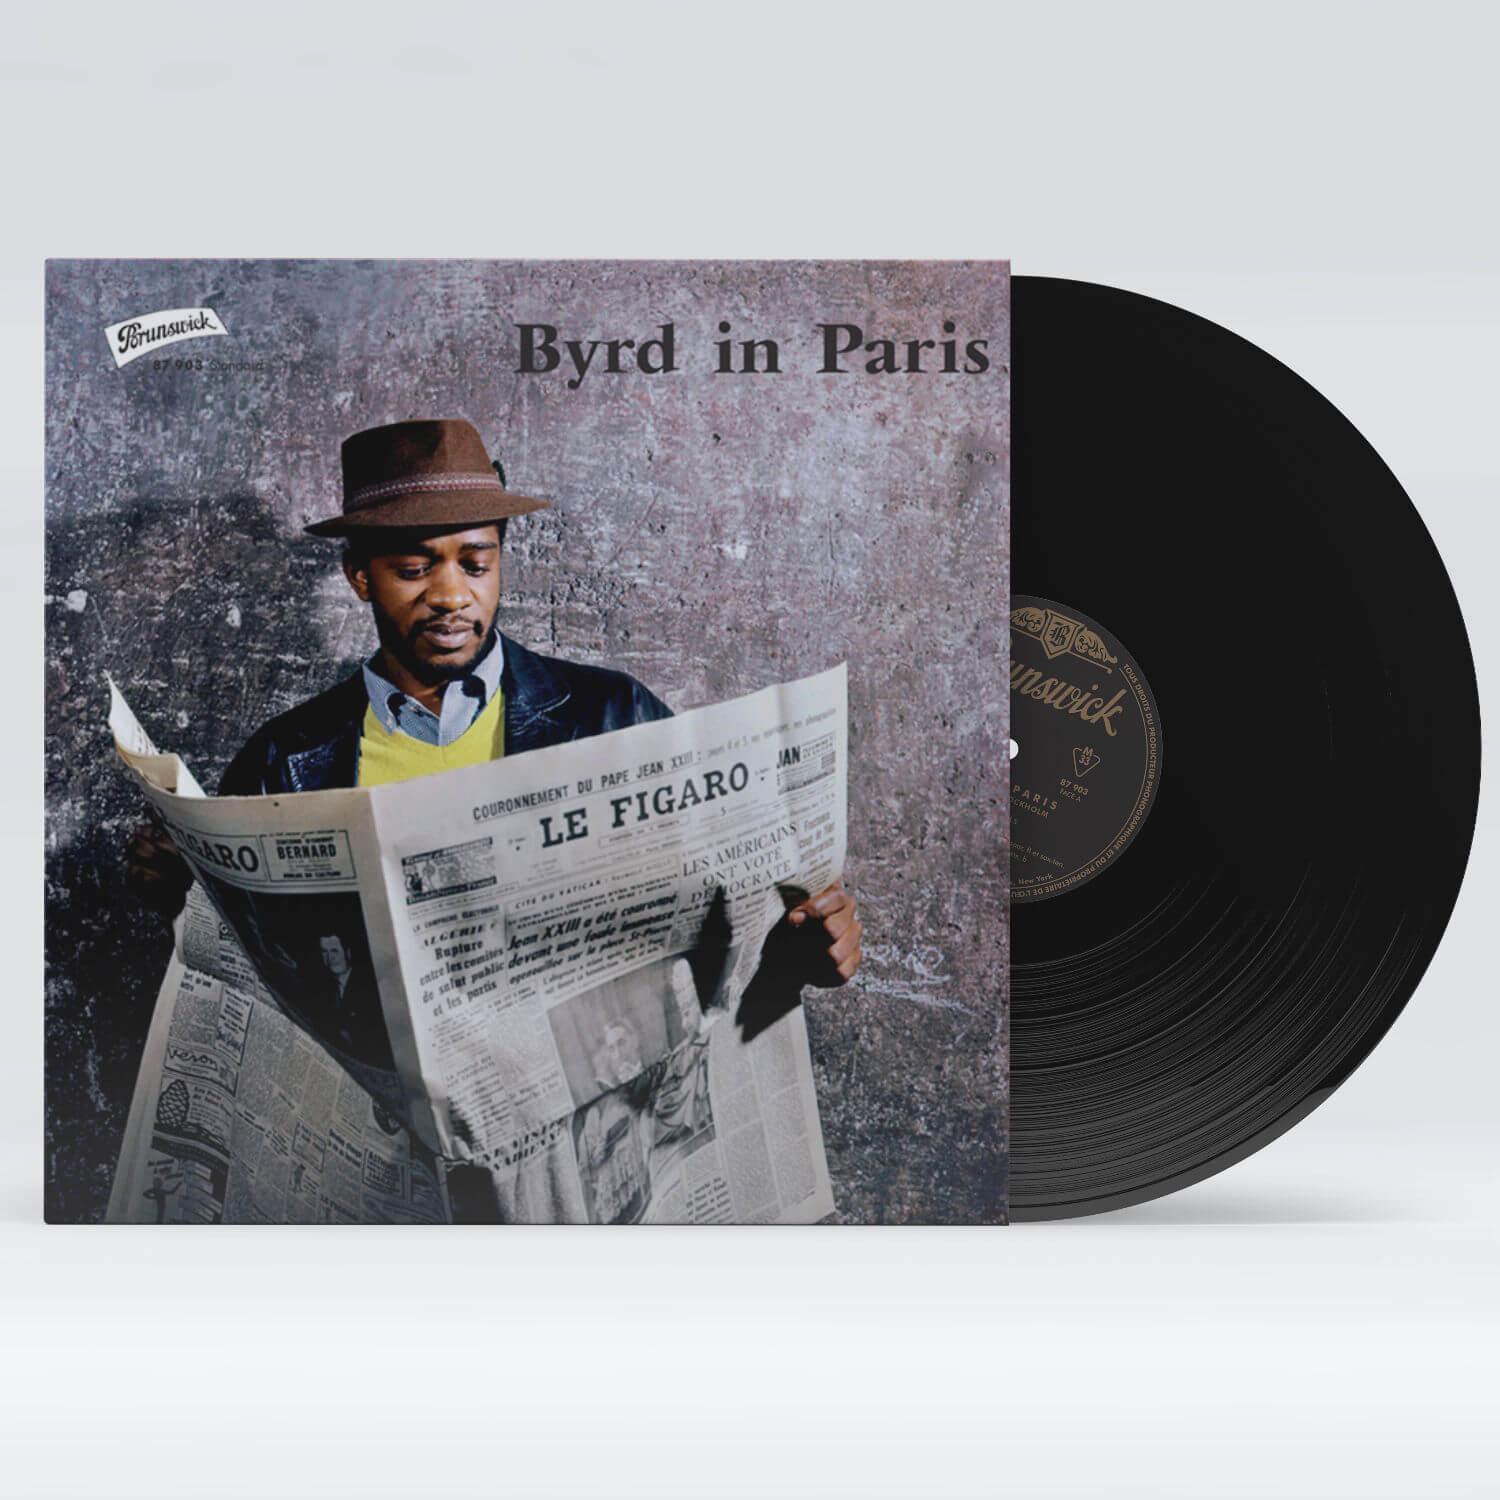 MockUp Donald Byrd - Byrd in Paris - WaxBuyersClub - SamRecords - Front Cover SQUARE